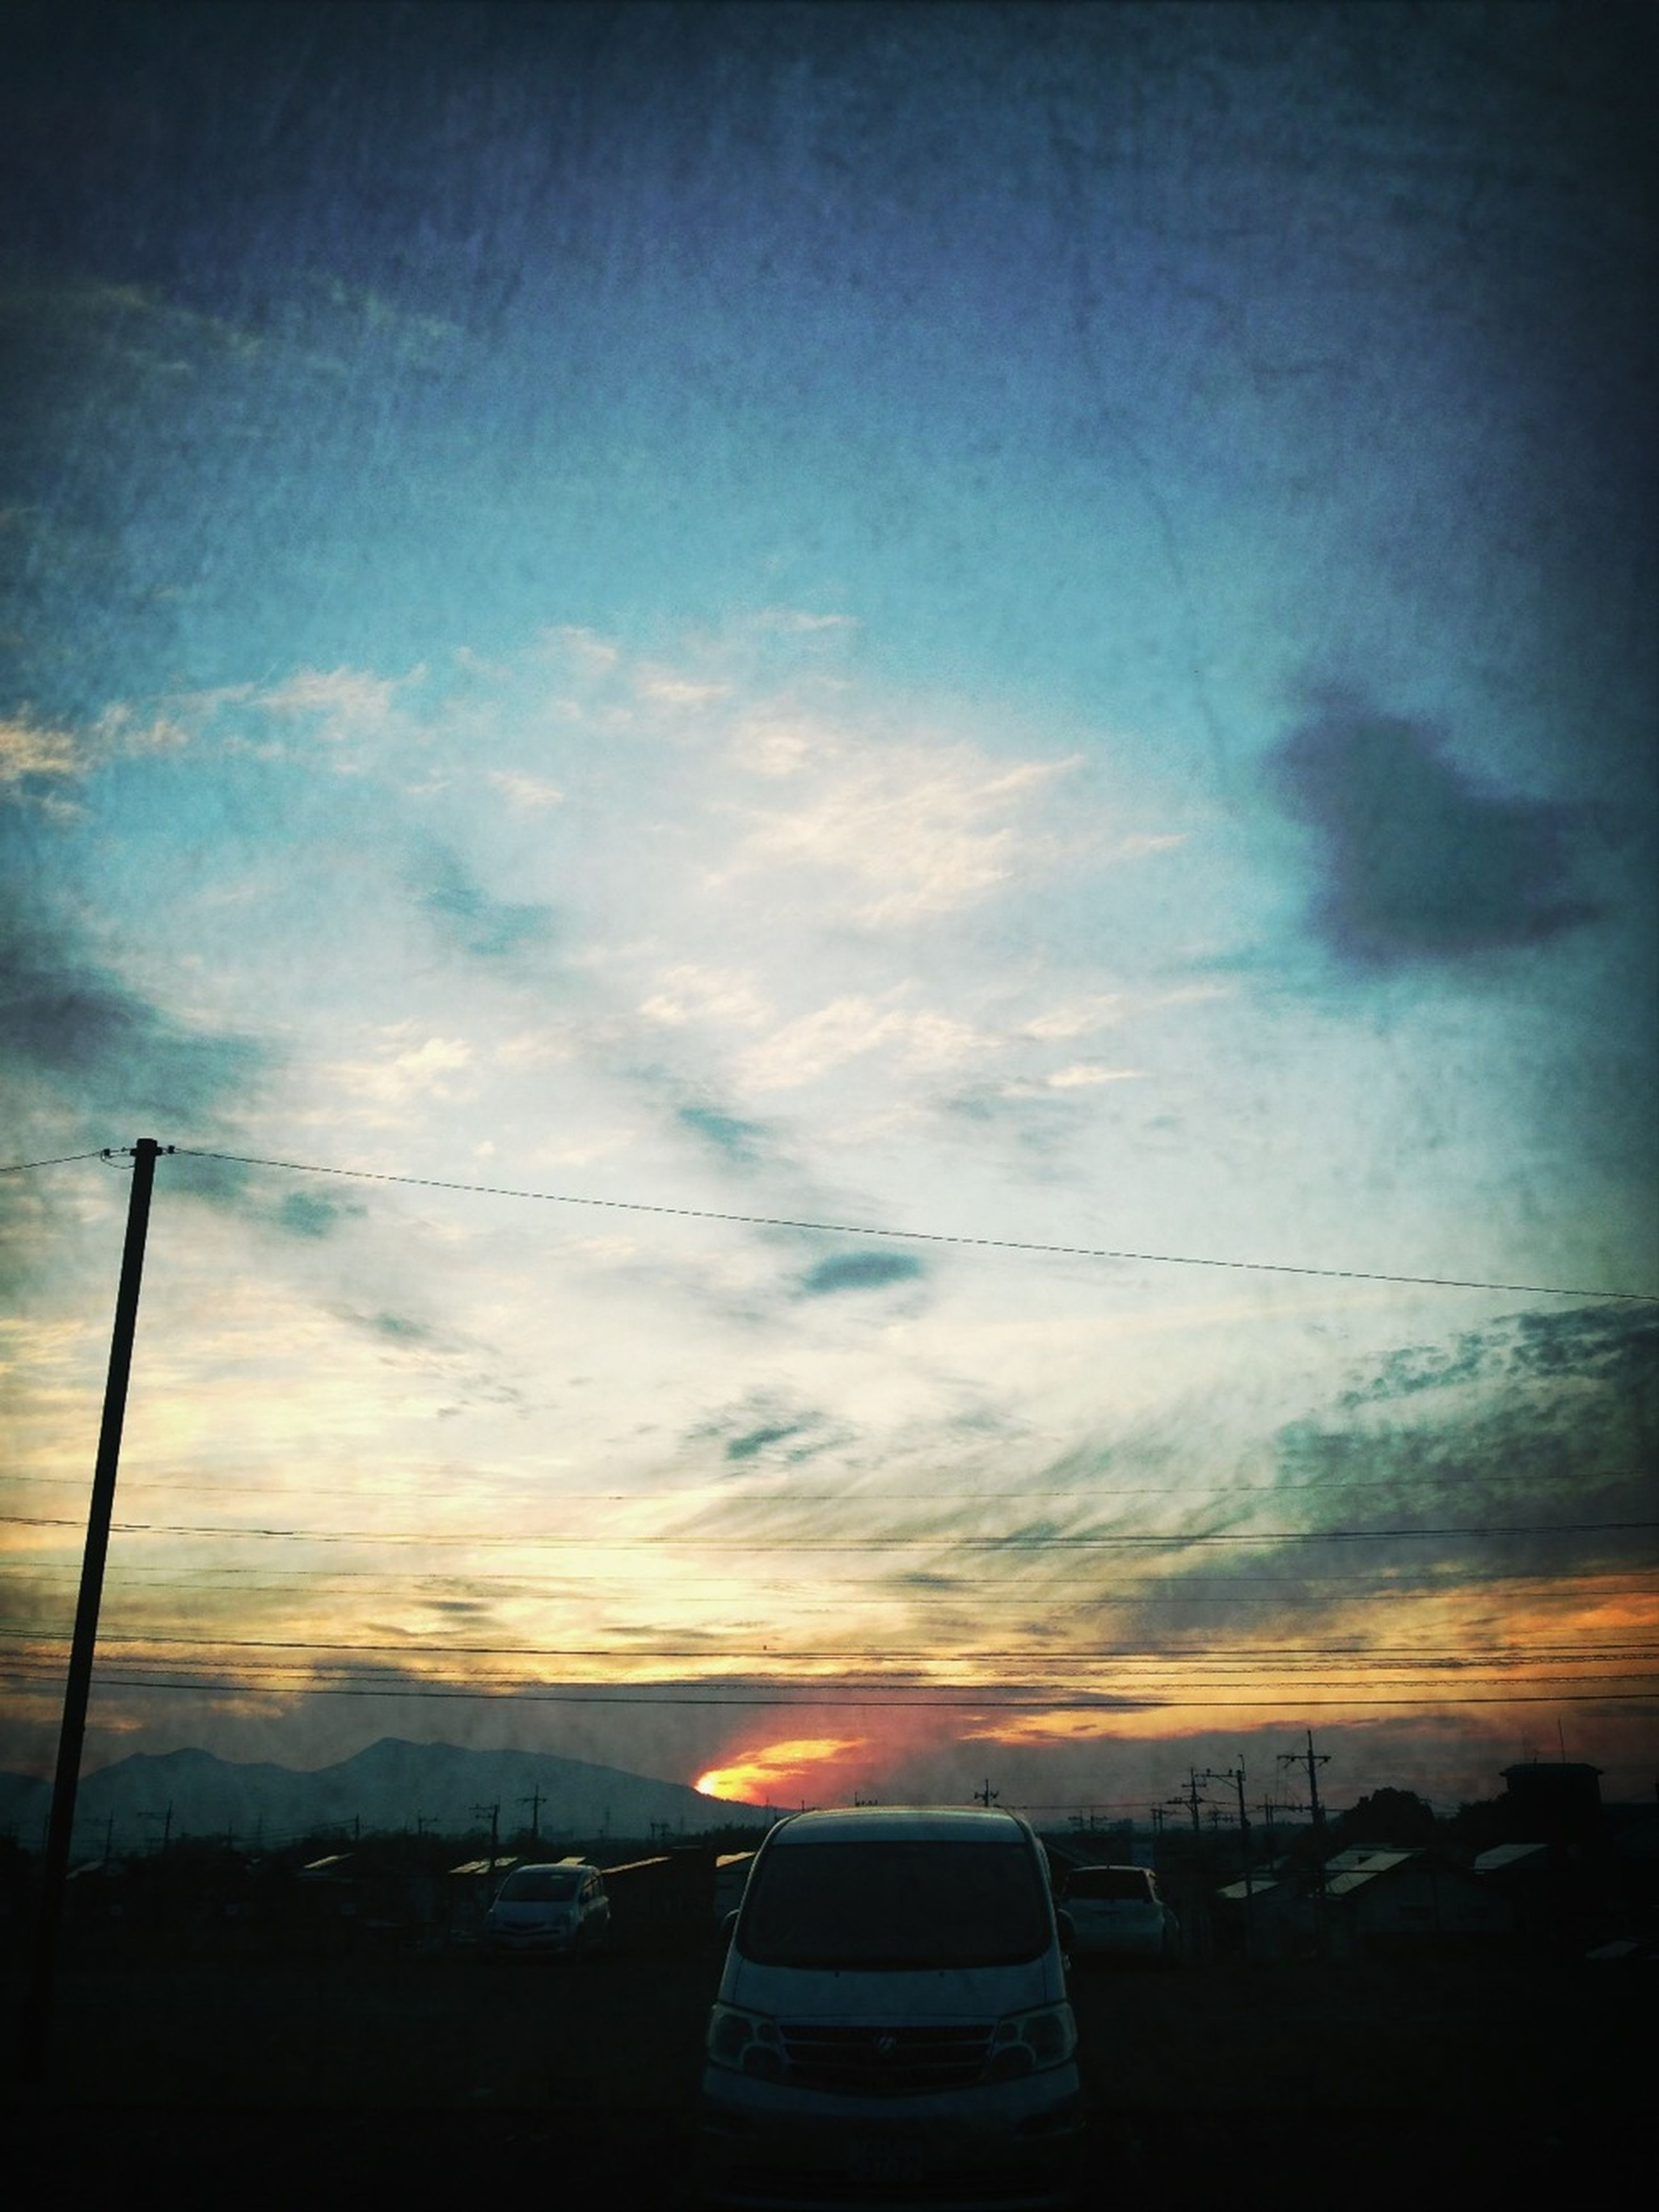 sunset, sky, silhouette, cloud - sky, transportation, beauty in nature, scenics, mode of transport, cloud, cloudy, car, nature, tranquility, orange color, tranquil scene, dusk, dramatic sky, street light, low angle view, land vehicle